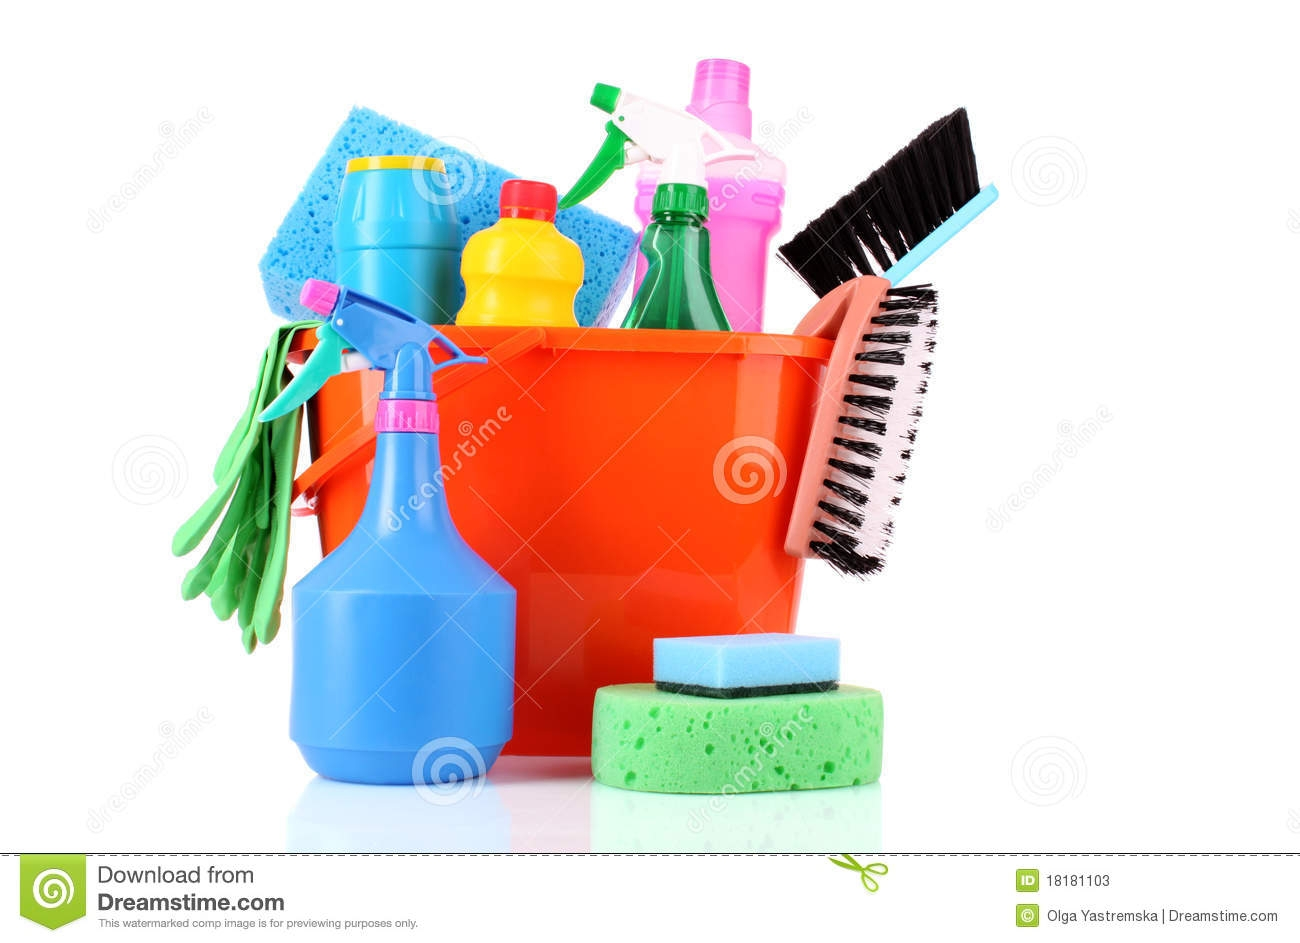 Interior Designs clipart cleaning supply Supplies Clip Image: With Cleaning